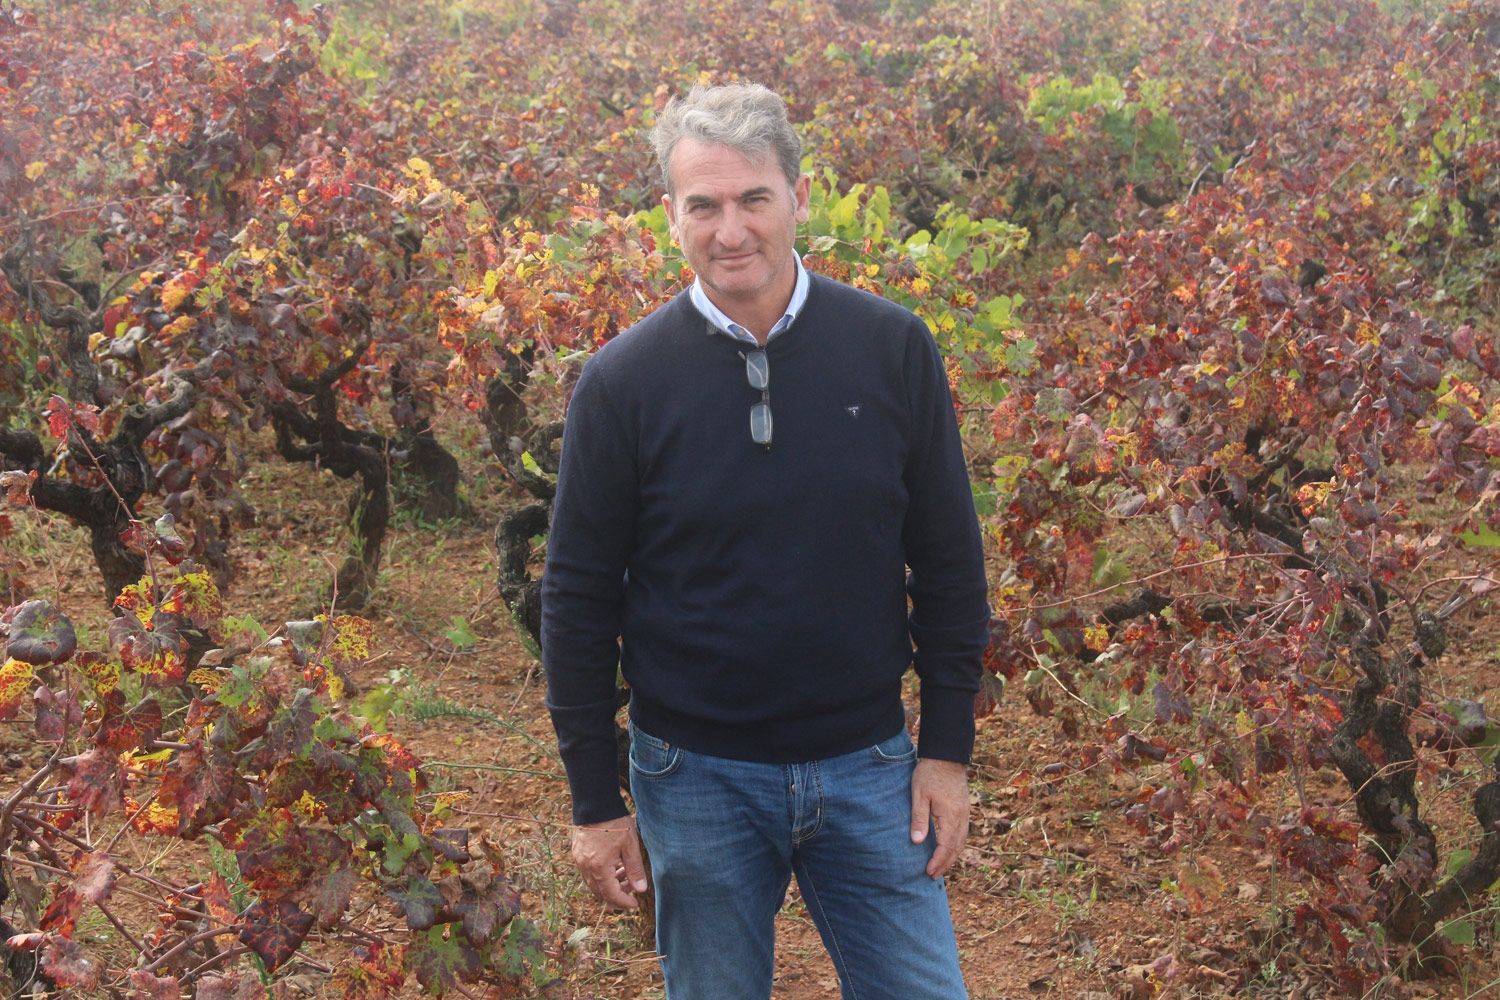 """Gianfranco fino, the self-proclaimed """"archaeologist of the vineyards, """"with his 50-year-old bush-trained Primitivo vines."""